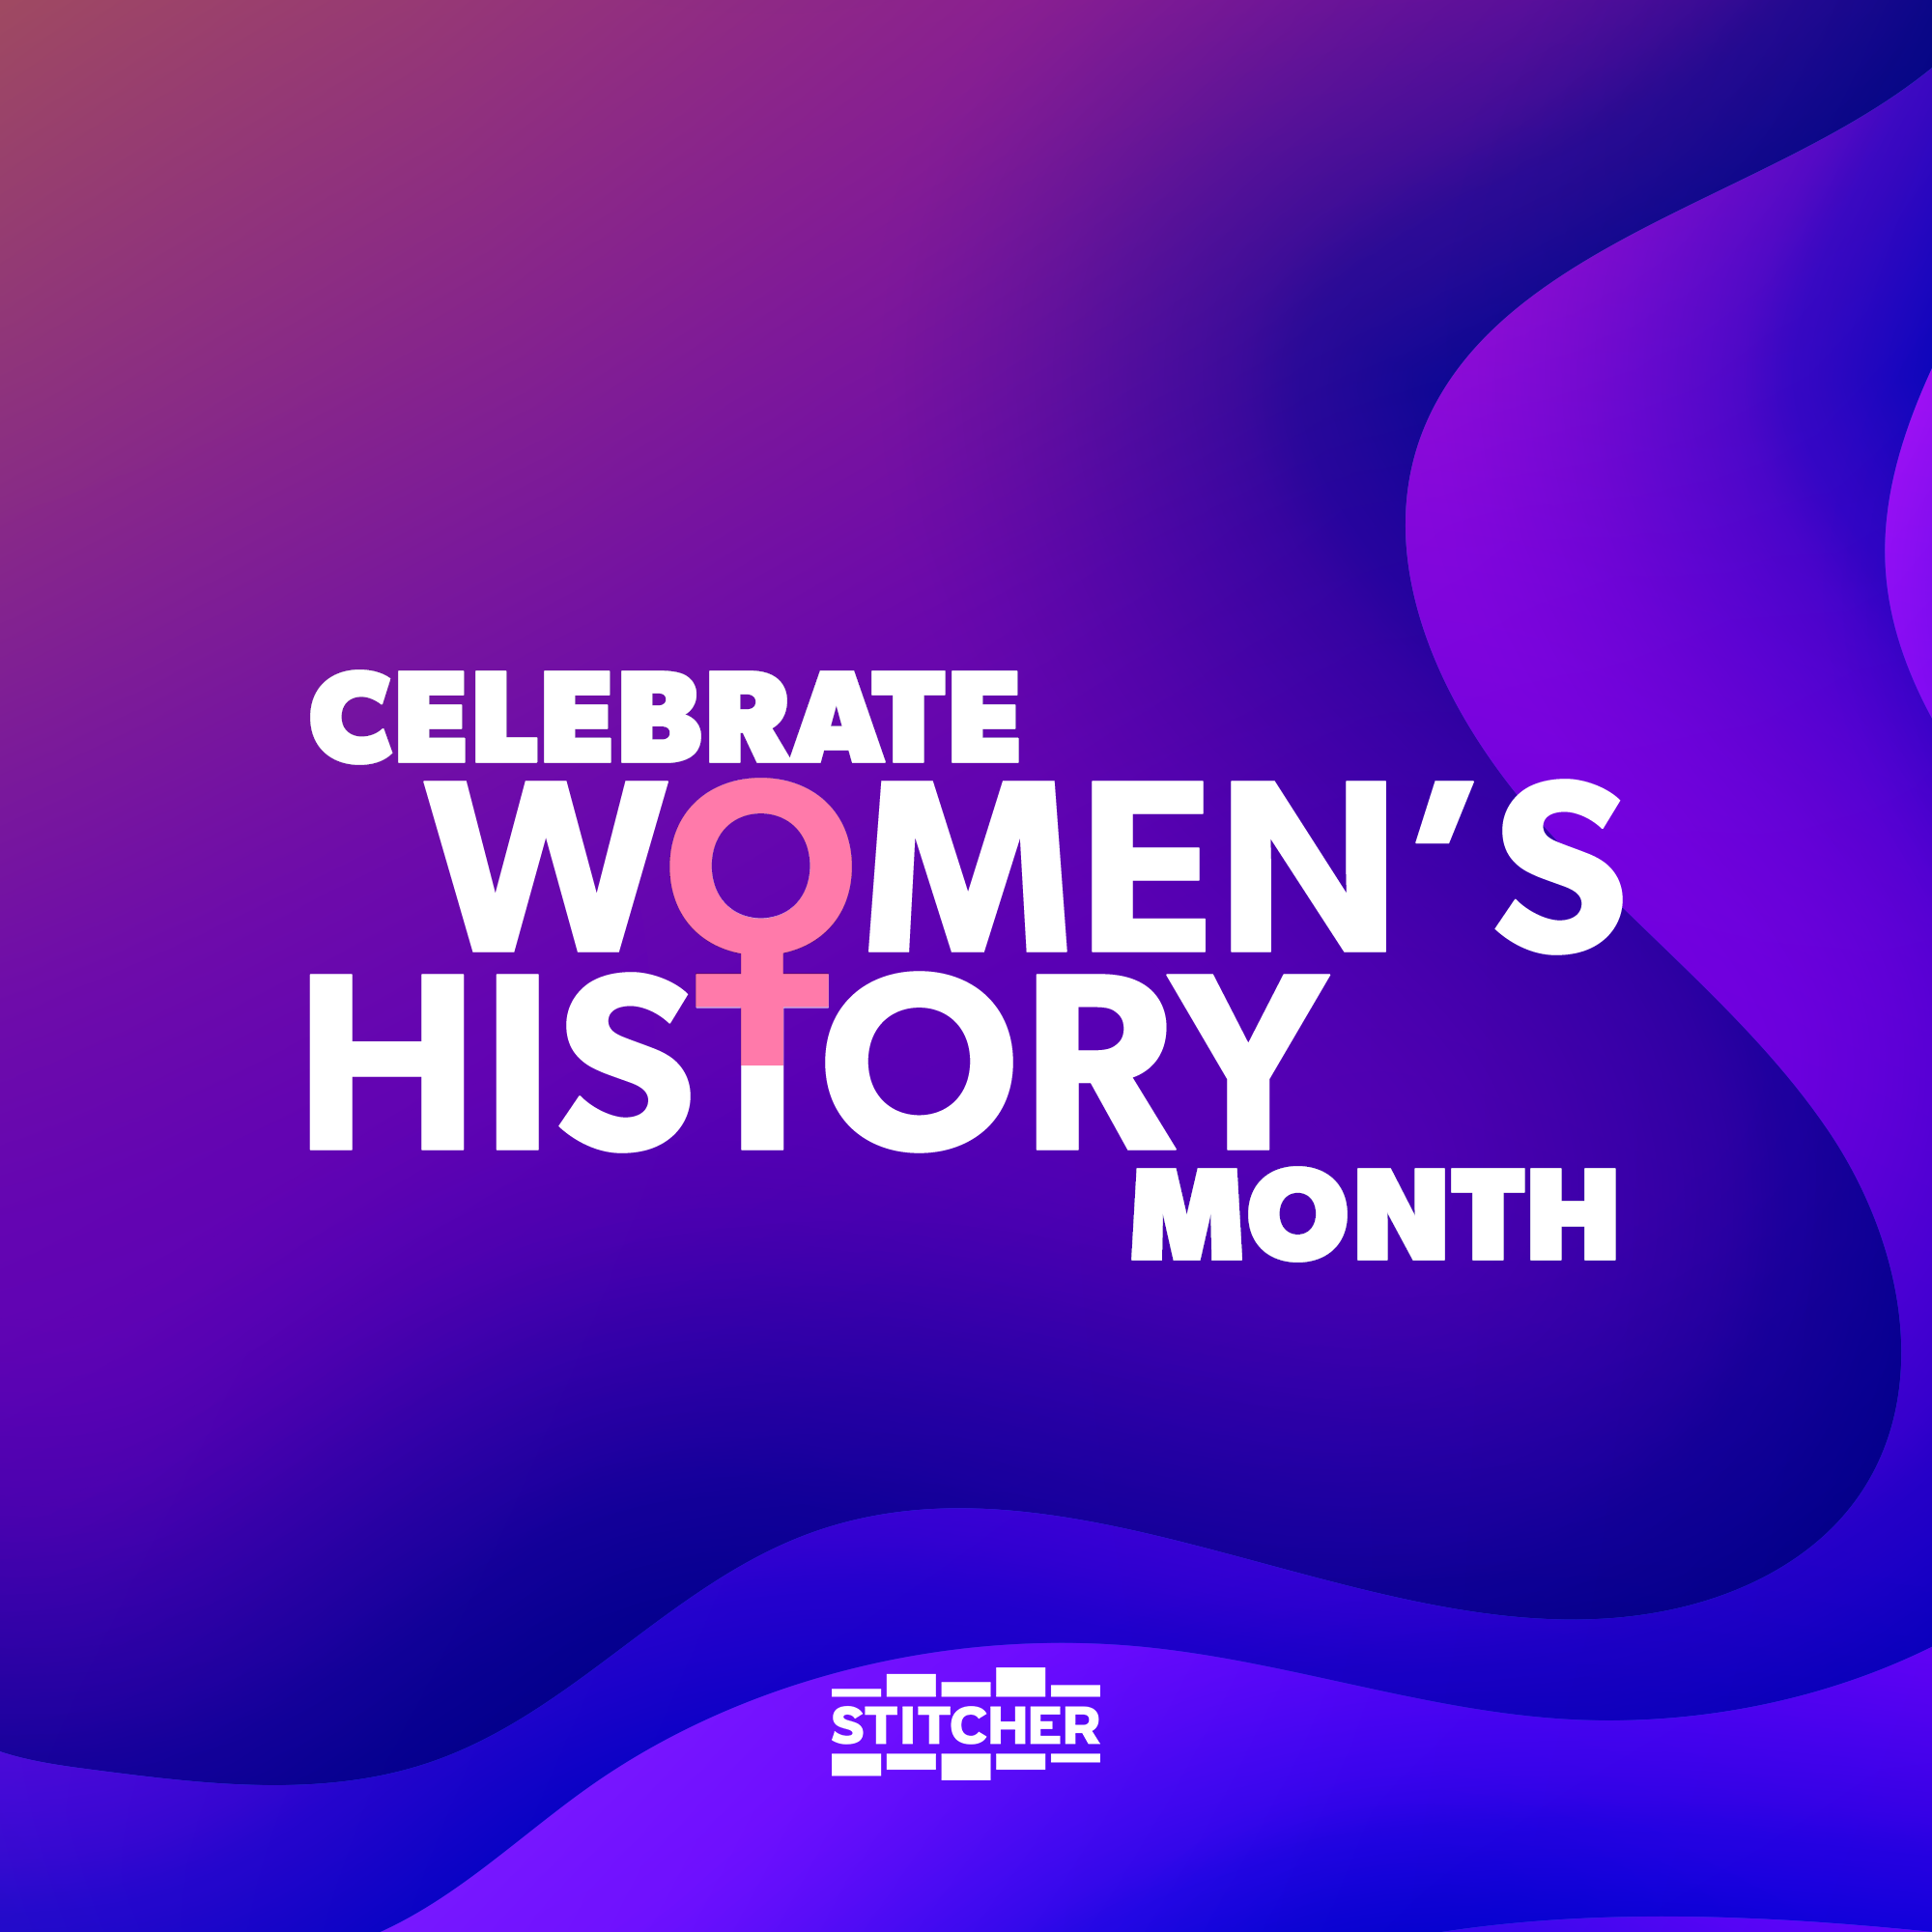 Women's History Month Promo Materials